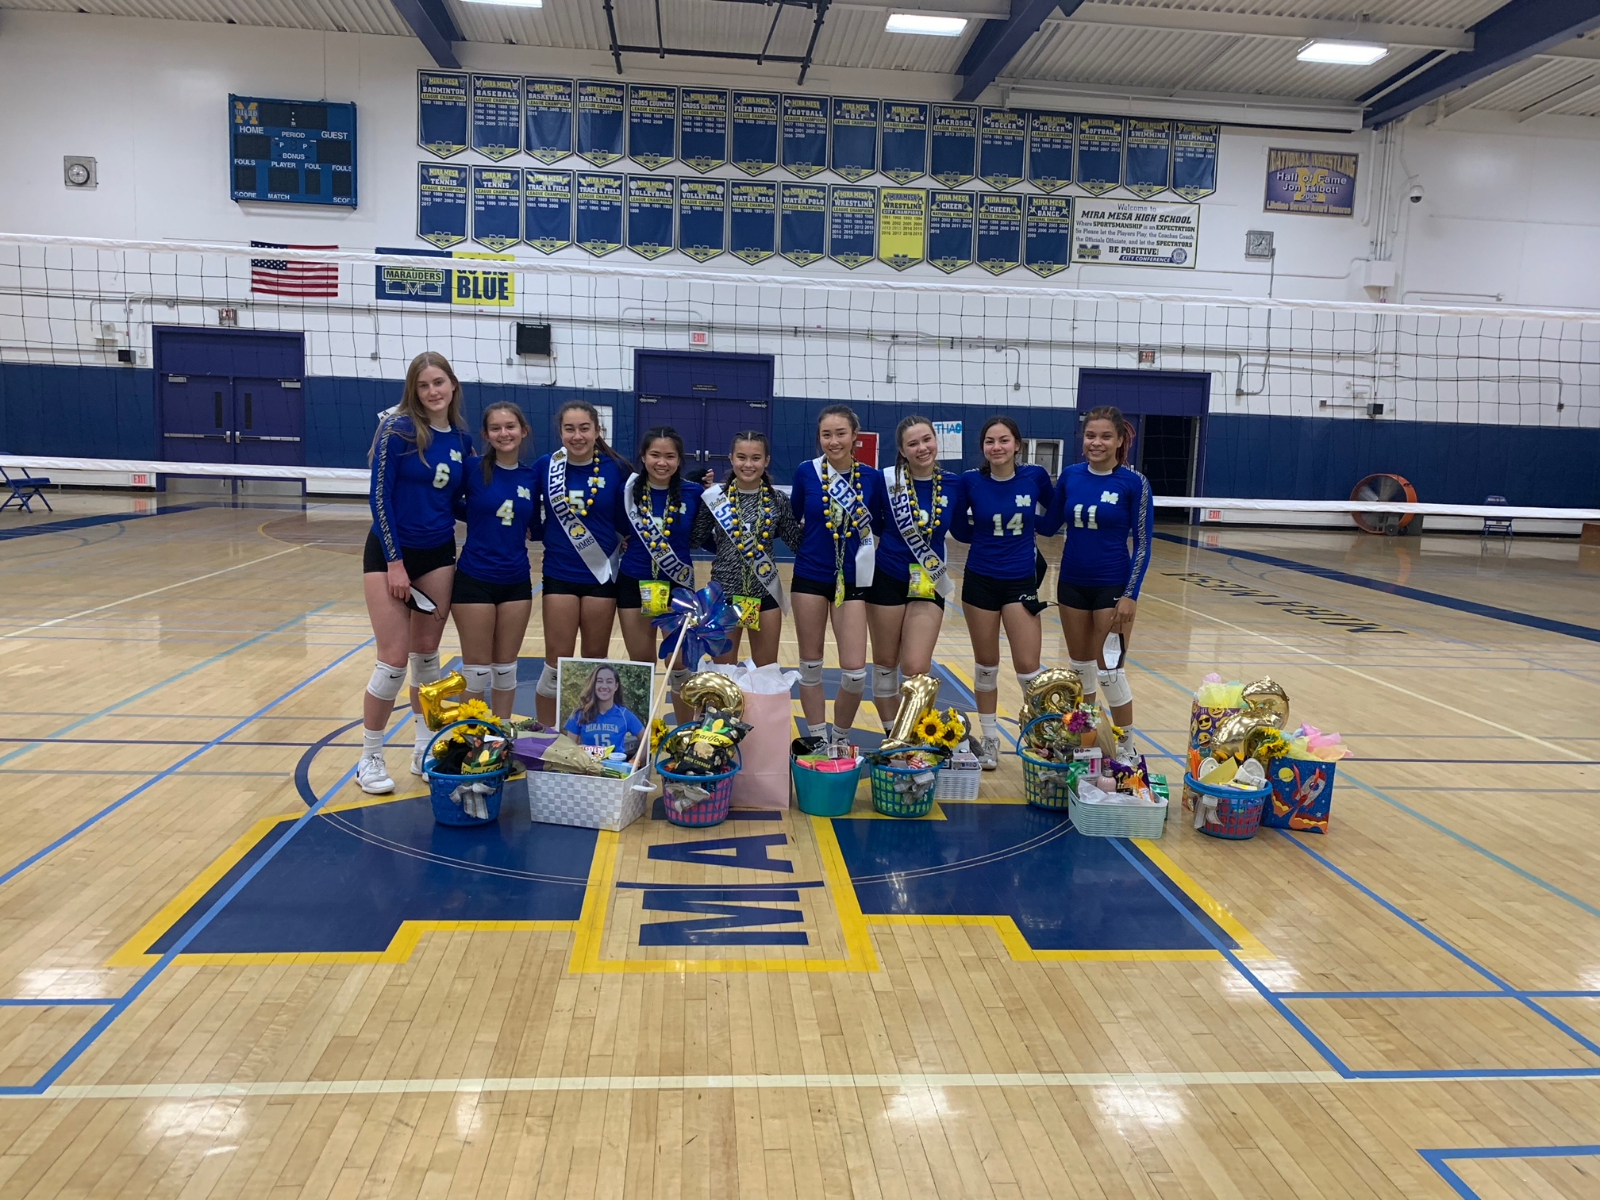 Girls Volleyball Program Goes Undefeated in League Play